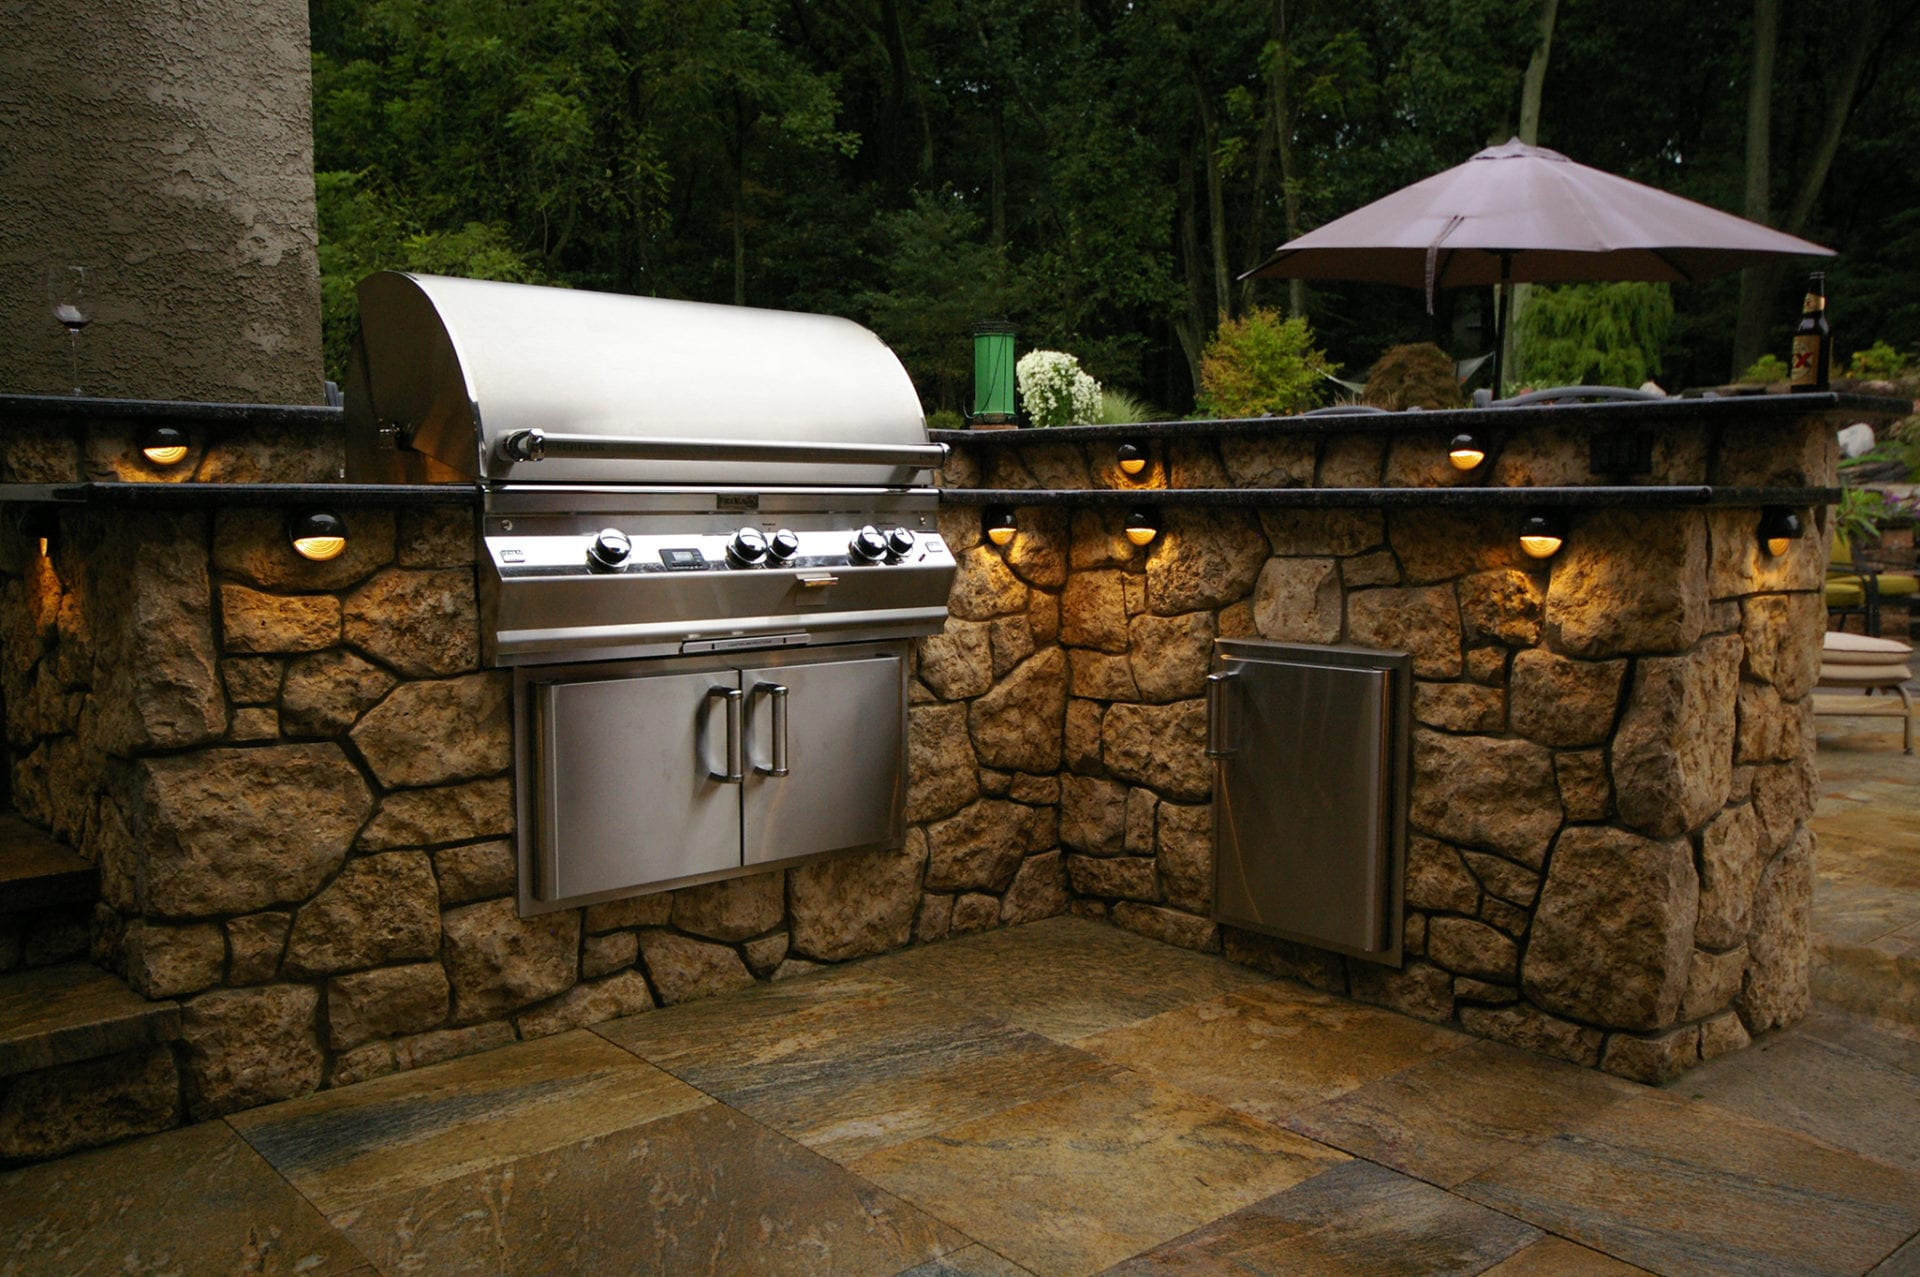 Image of an Outdoor Kitchen Install